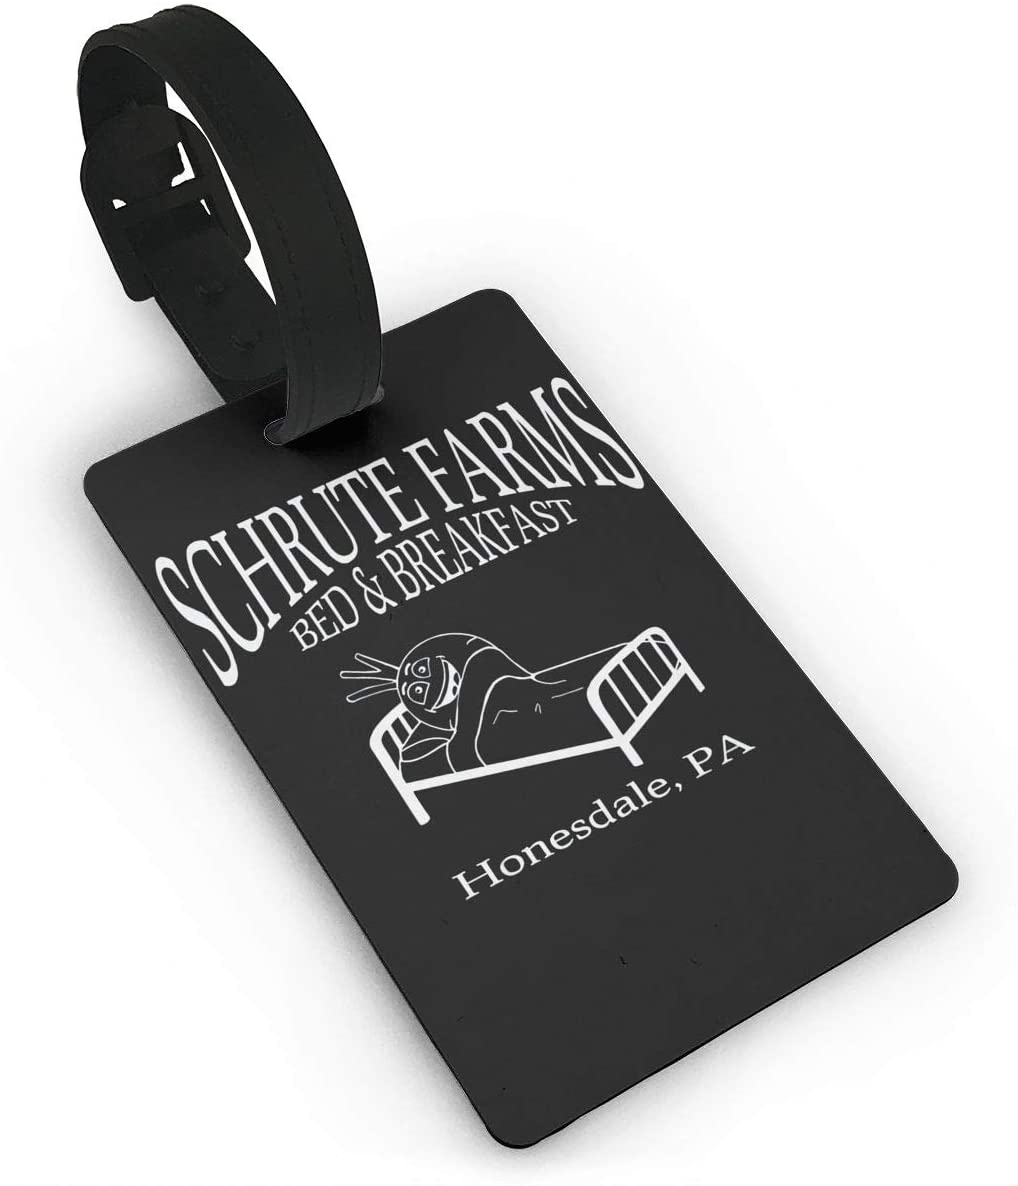 Lmlfes Schrute Farmtravel Luggage Tag with Rope Suitcase Tag.